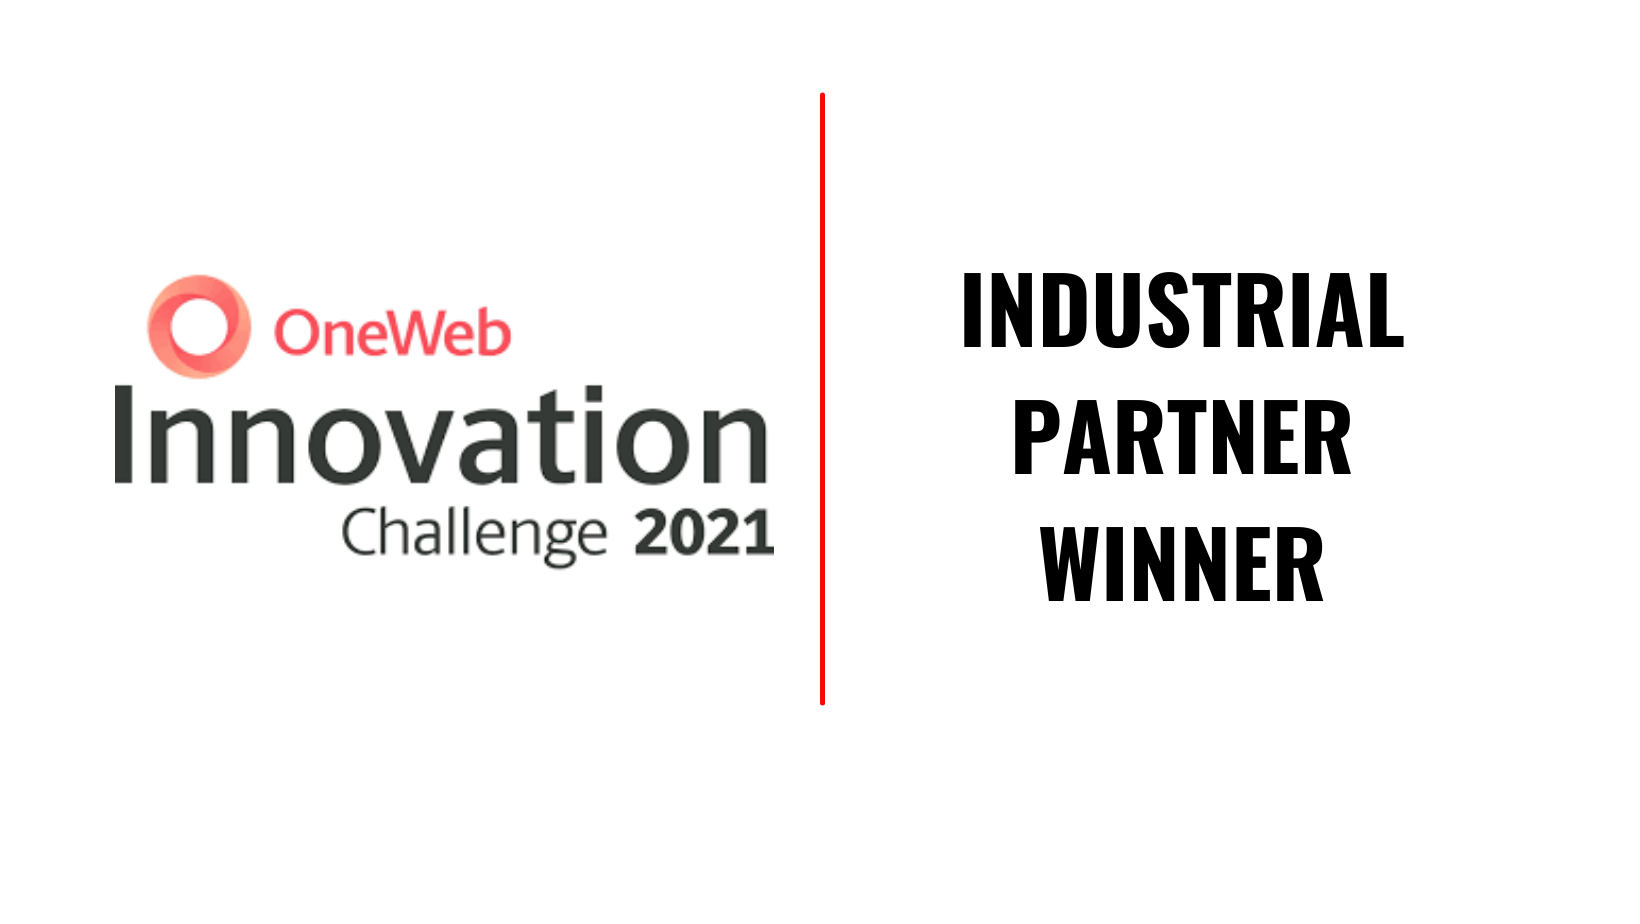 To Infinity and Beyond: OneWeb Innovation Challenge Winner 2021